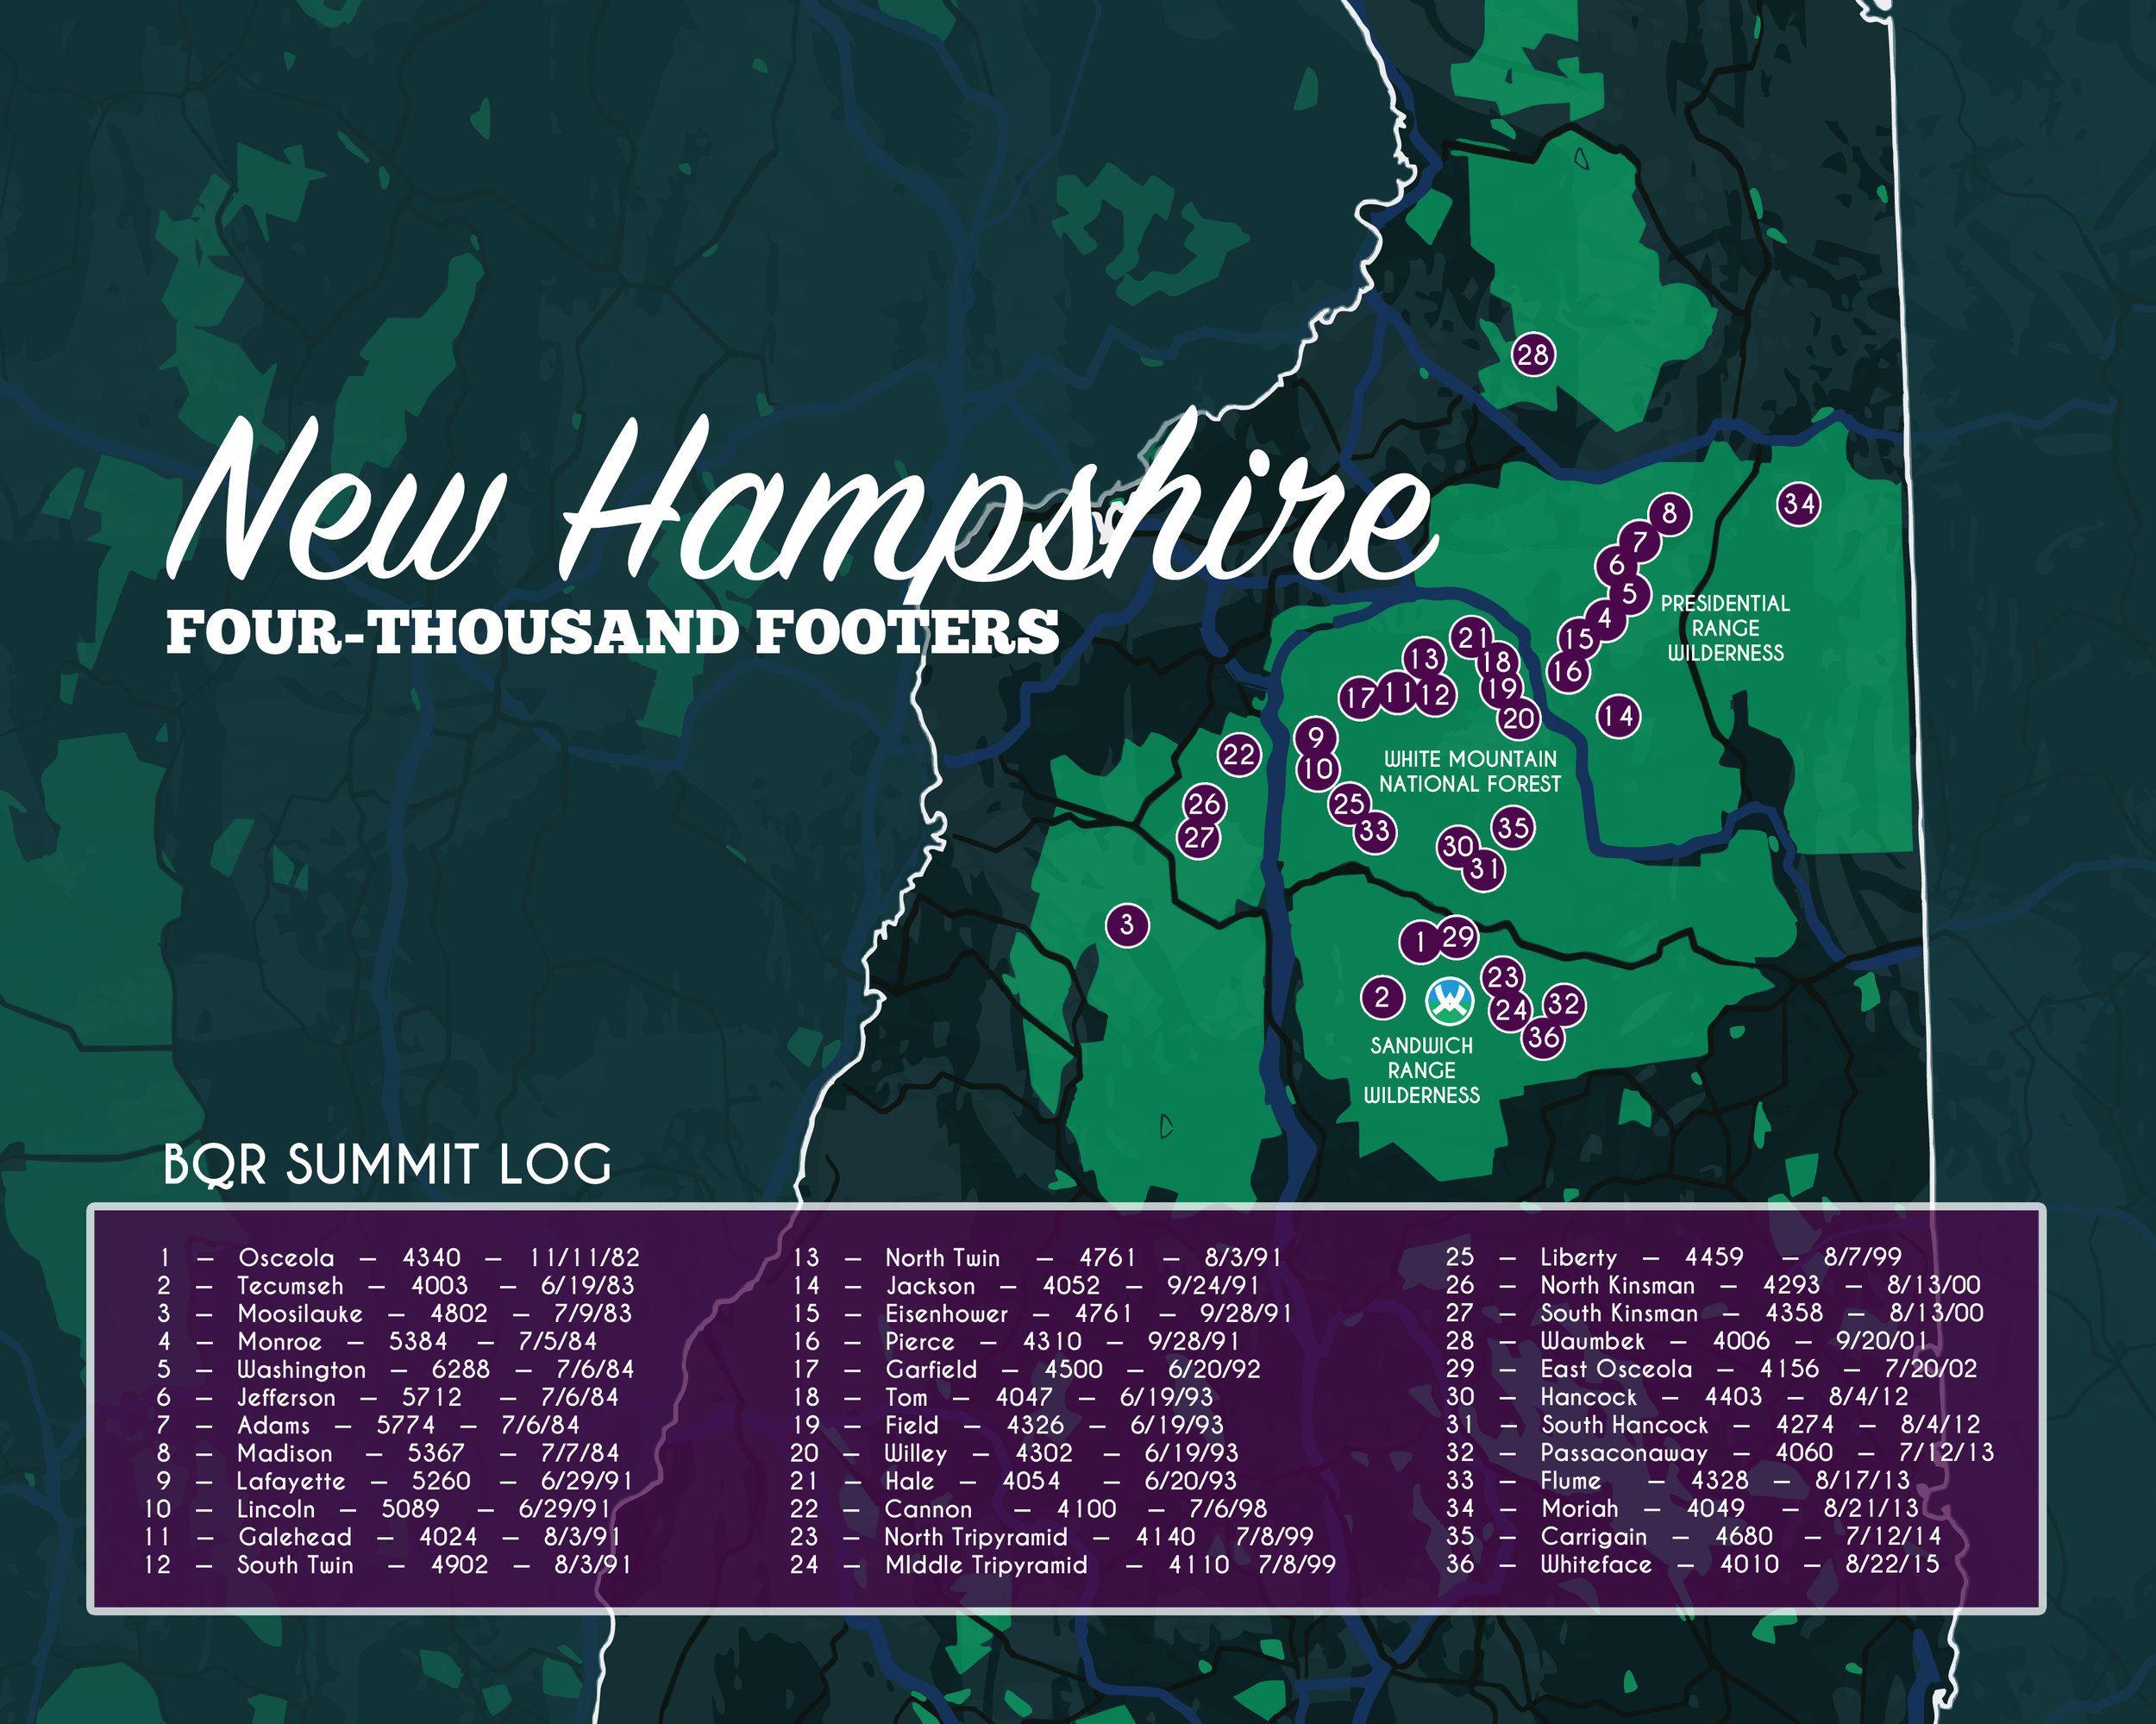 New Hampshire Four Thousand Footers, 2016